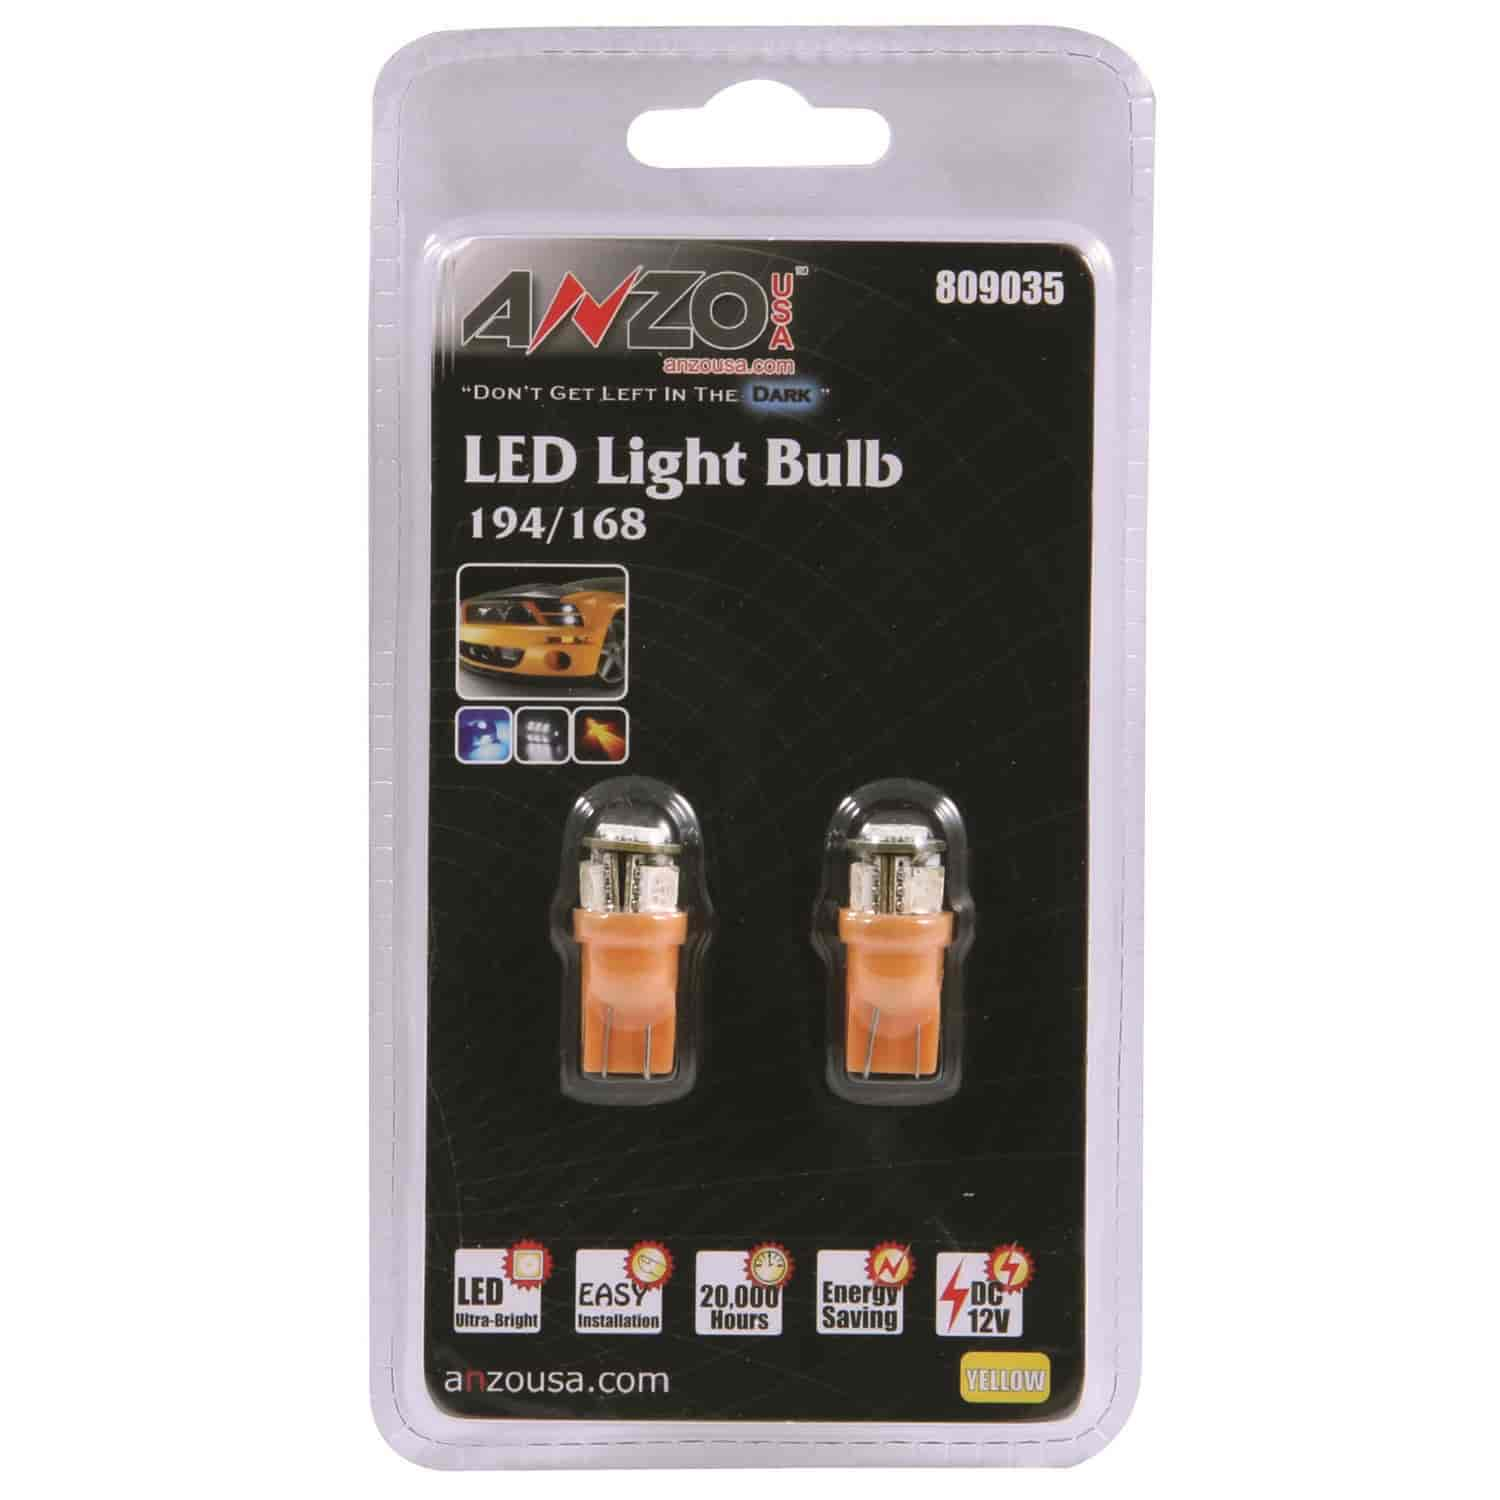 Anzo 809035 - Anzo LED Universal Light Bulbs